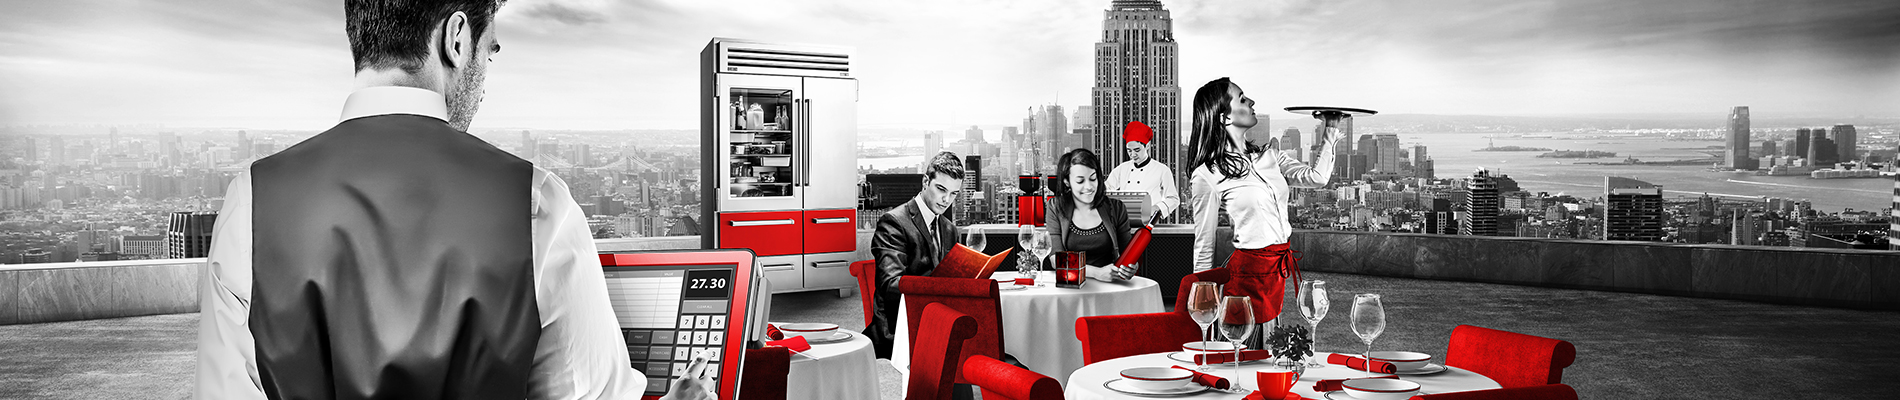 The Hotel Experience | Reimagining Hospitality